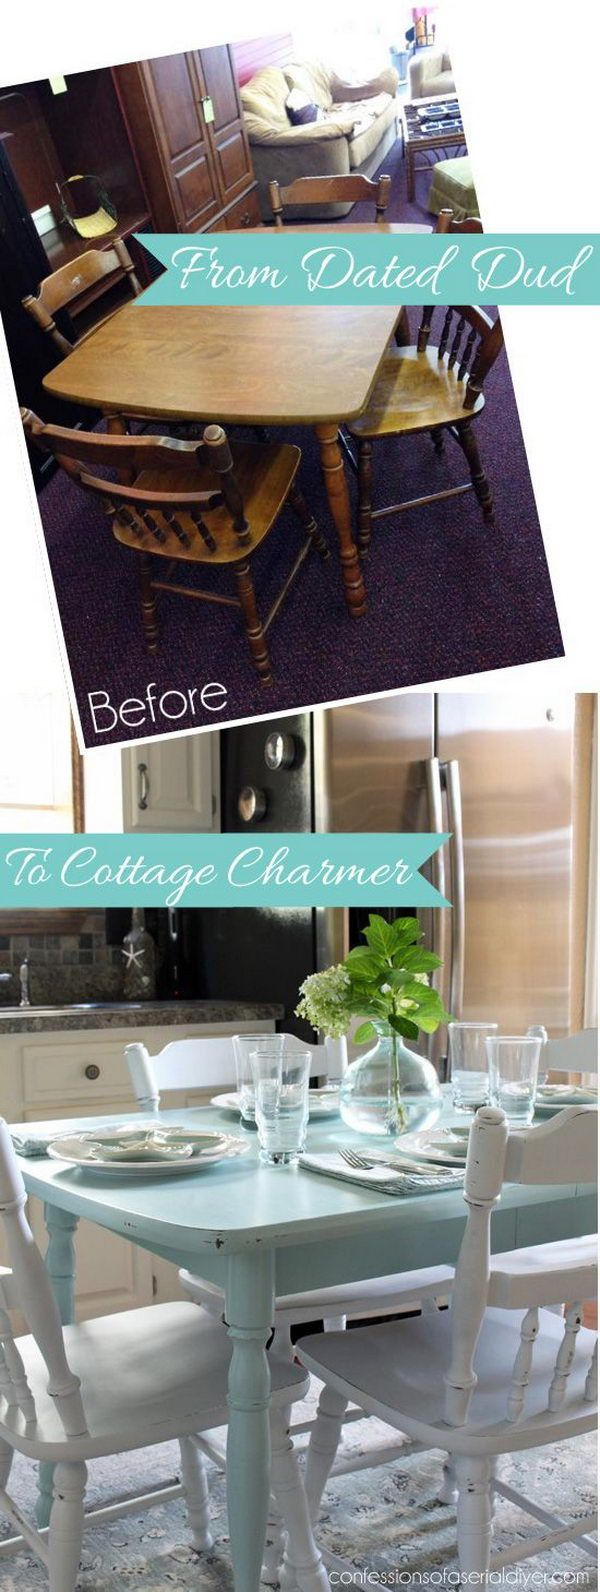 painted tables painted kitchen tables Fantistic DIY Shabby Chic Furniture Ideas Tutorials Refinishing Kitchen TablesFurniture RefinishingFurniture MakeoverPainting